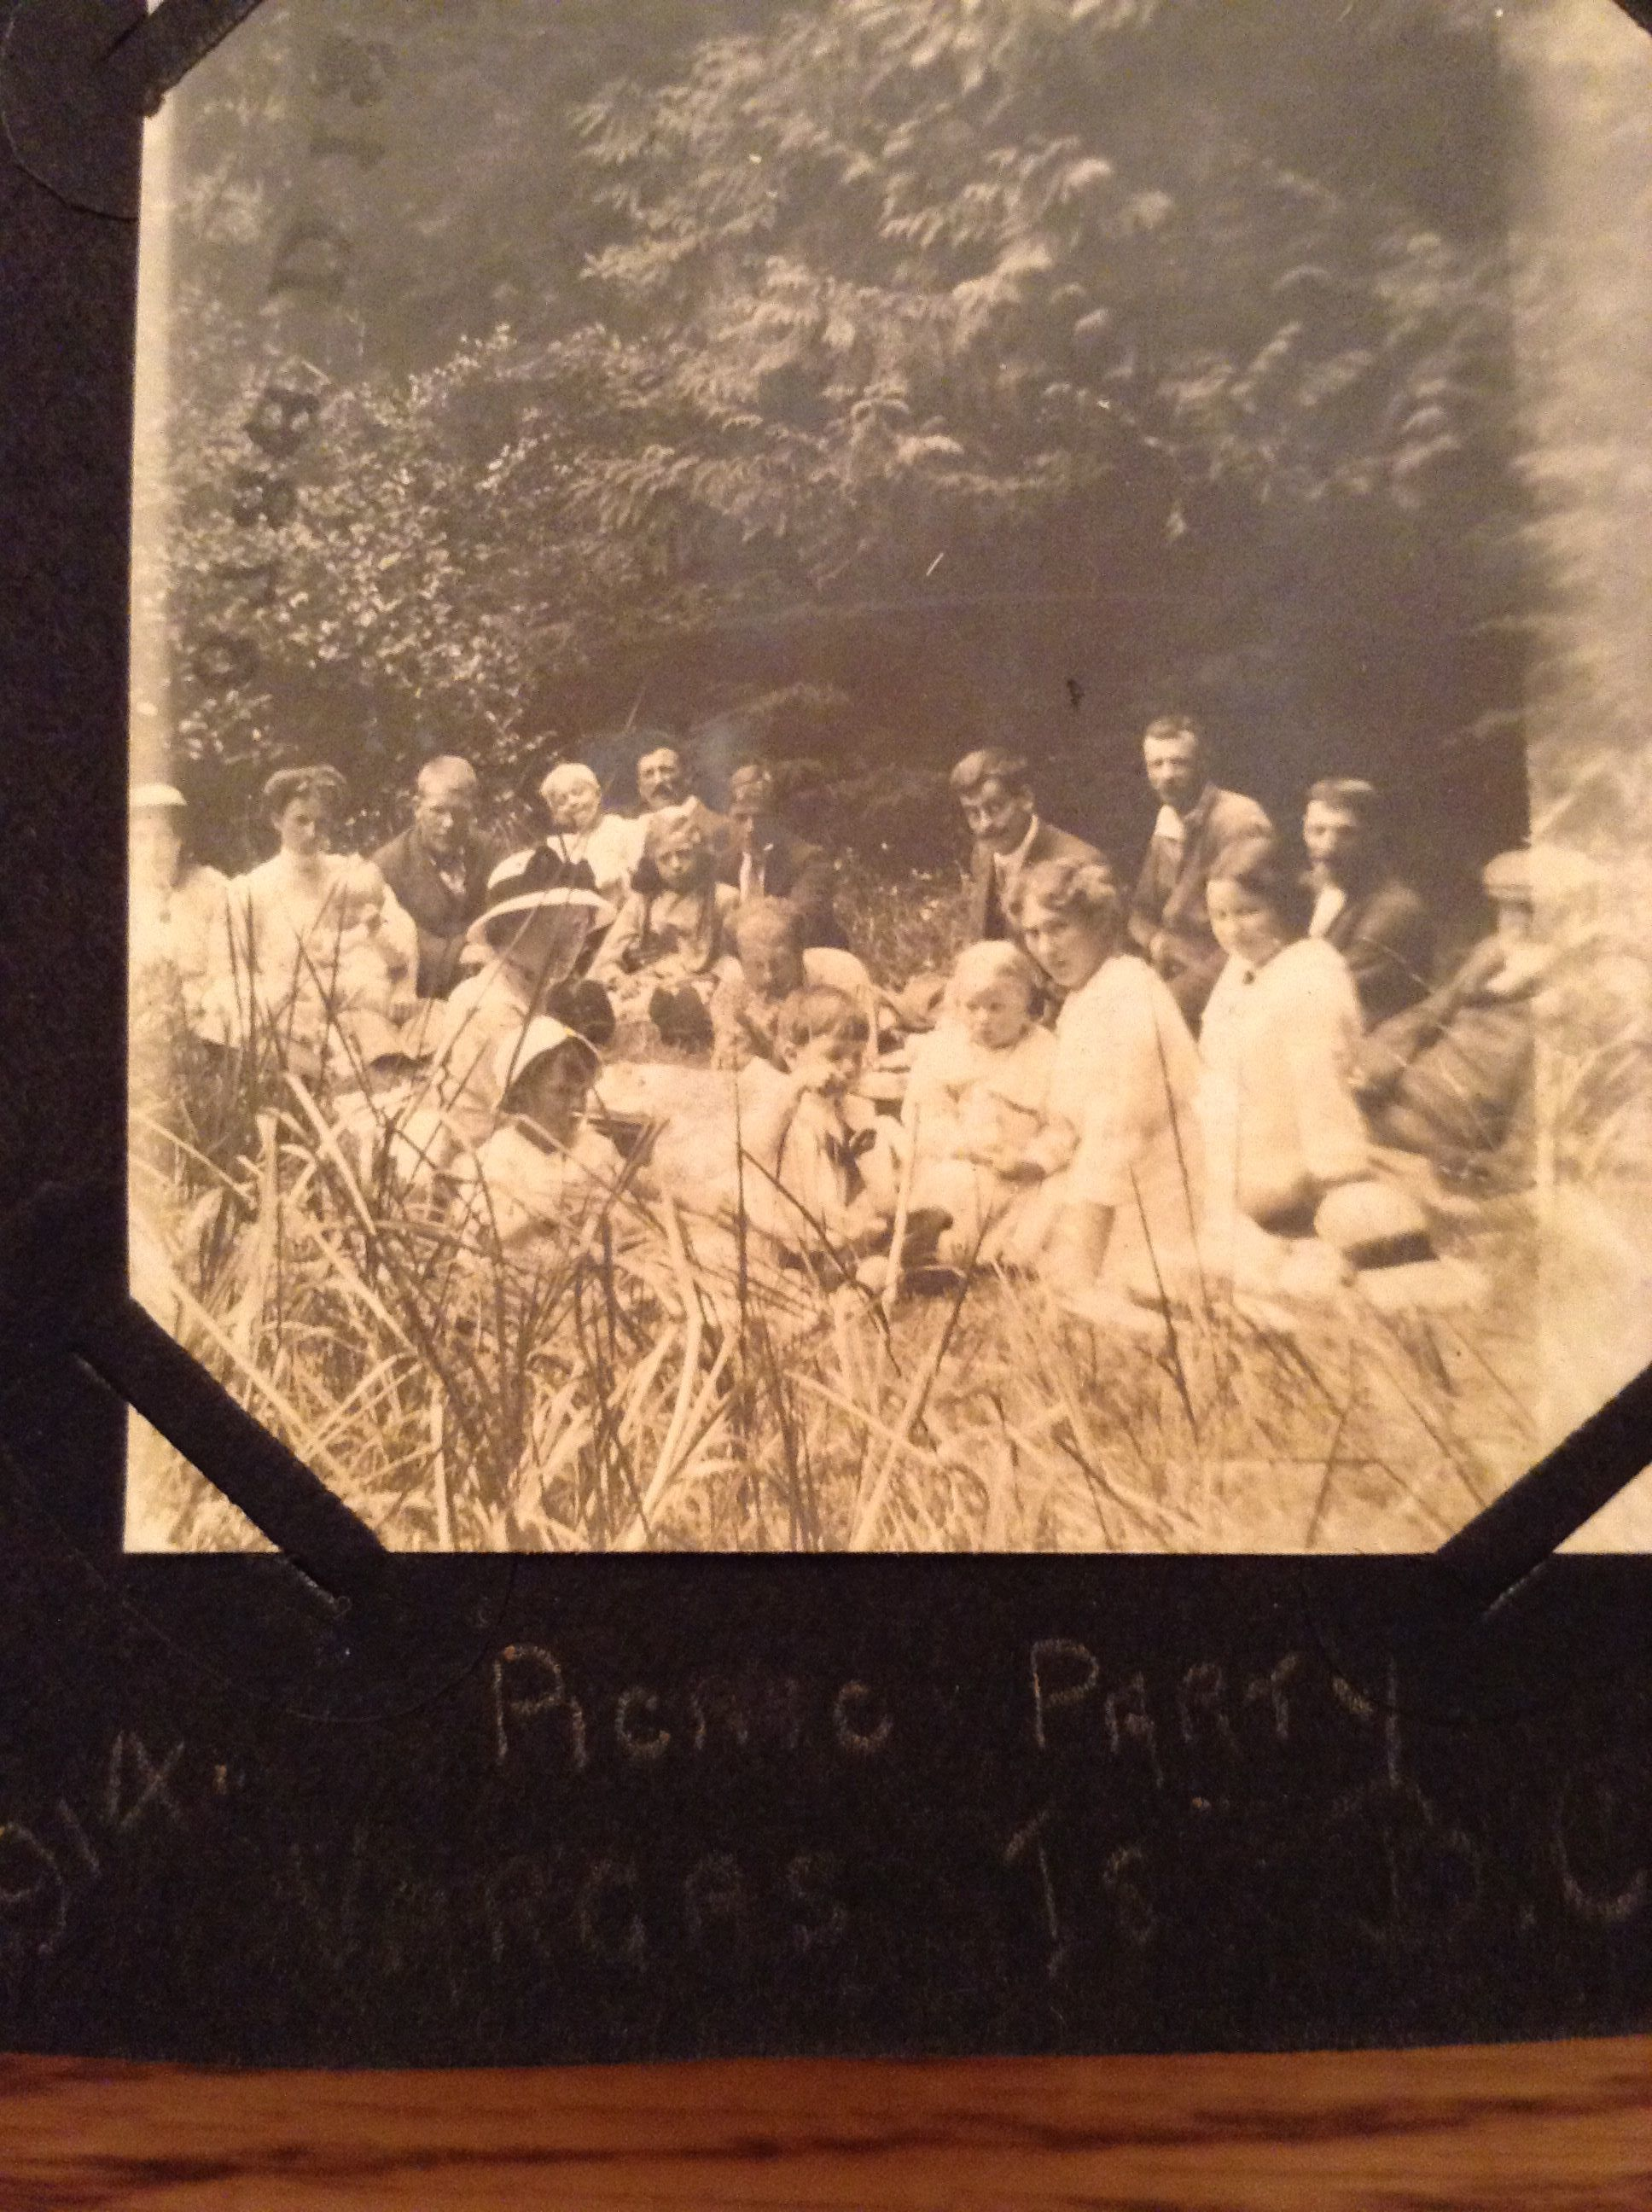 Picnic Party on Vargas Island 1914